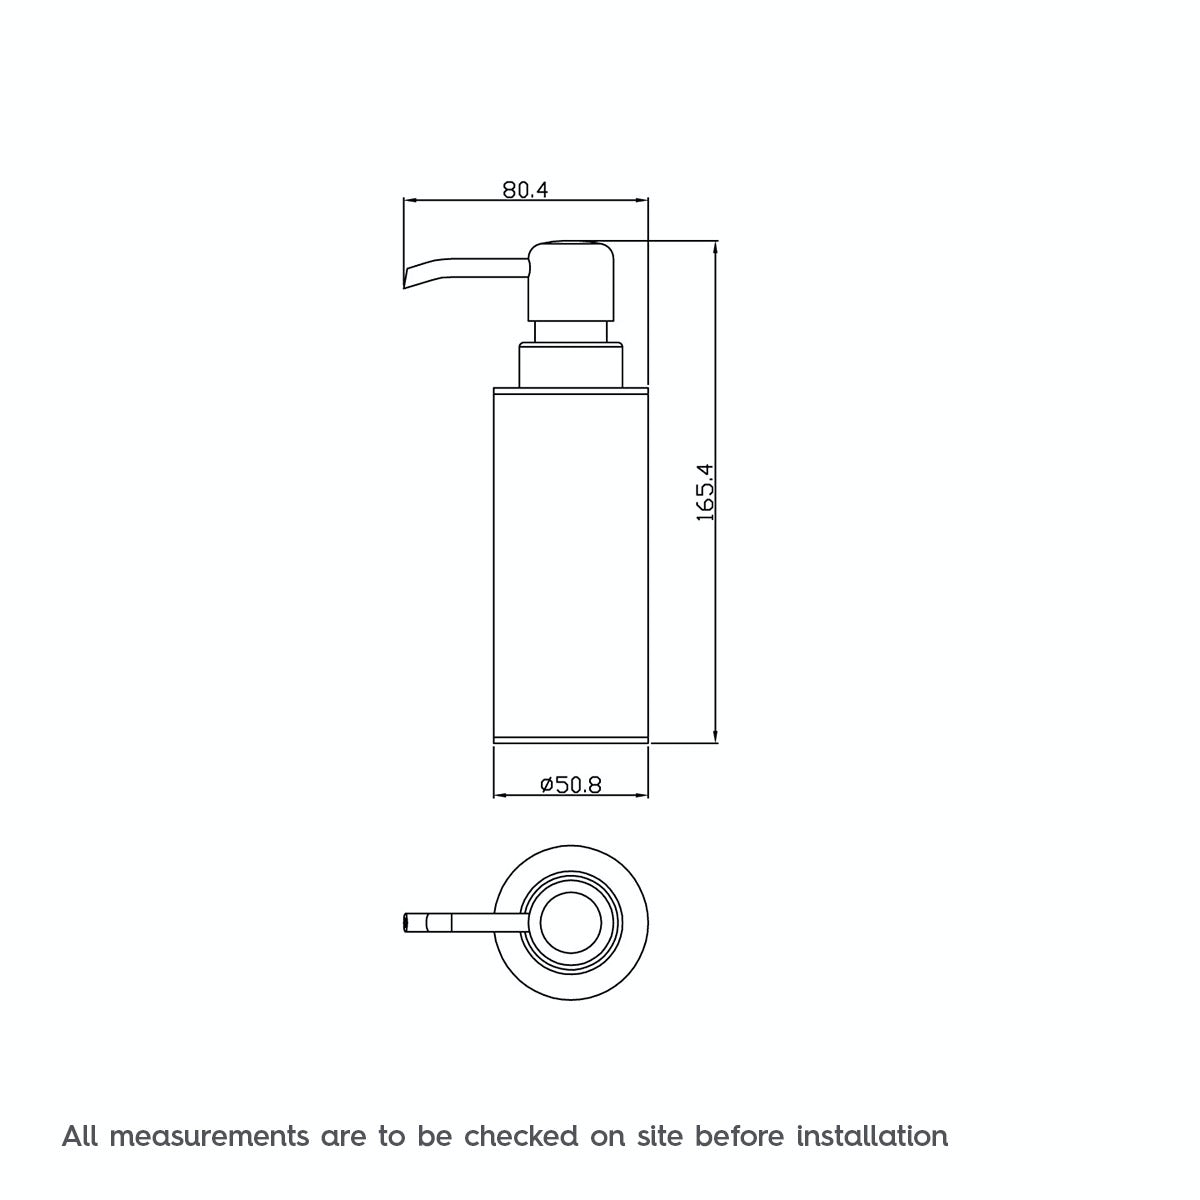 Dimensions for Orchard Options freestanding slim stainless steel soap dispenser